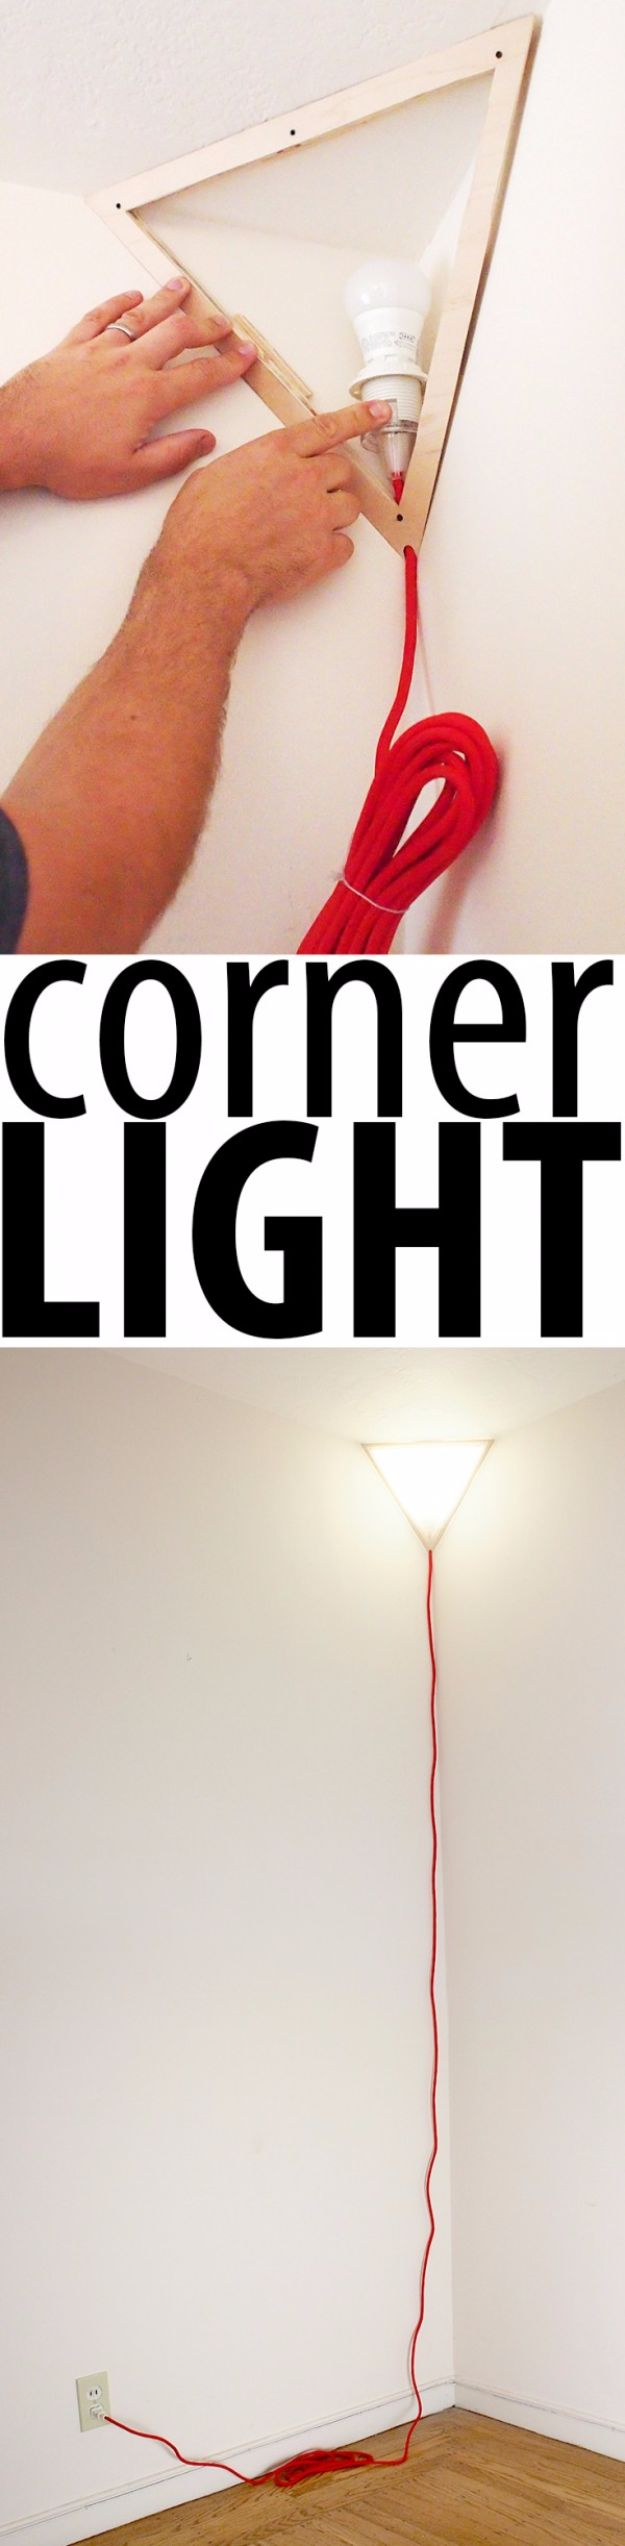 DIY Lighting Ideas and Cool DIY Light Projects for the Home - Corner Light - Easy DIY Ideas for Chandeliers, lights, lamps, awesome pendants and creative hanging fixtures, complete with tutorials with instructions. Cheap do it yourself lighting tutorials for indoor - bedroom, living room, bathroom, kitchen DIY Projects and Crafts for Women and Men